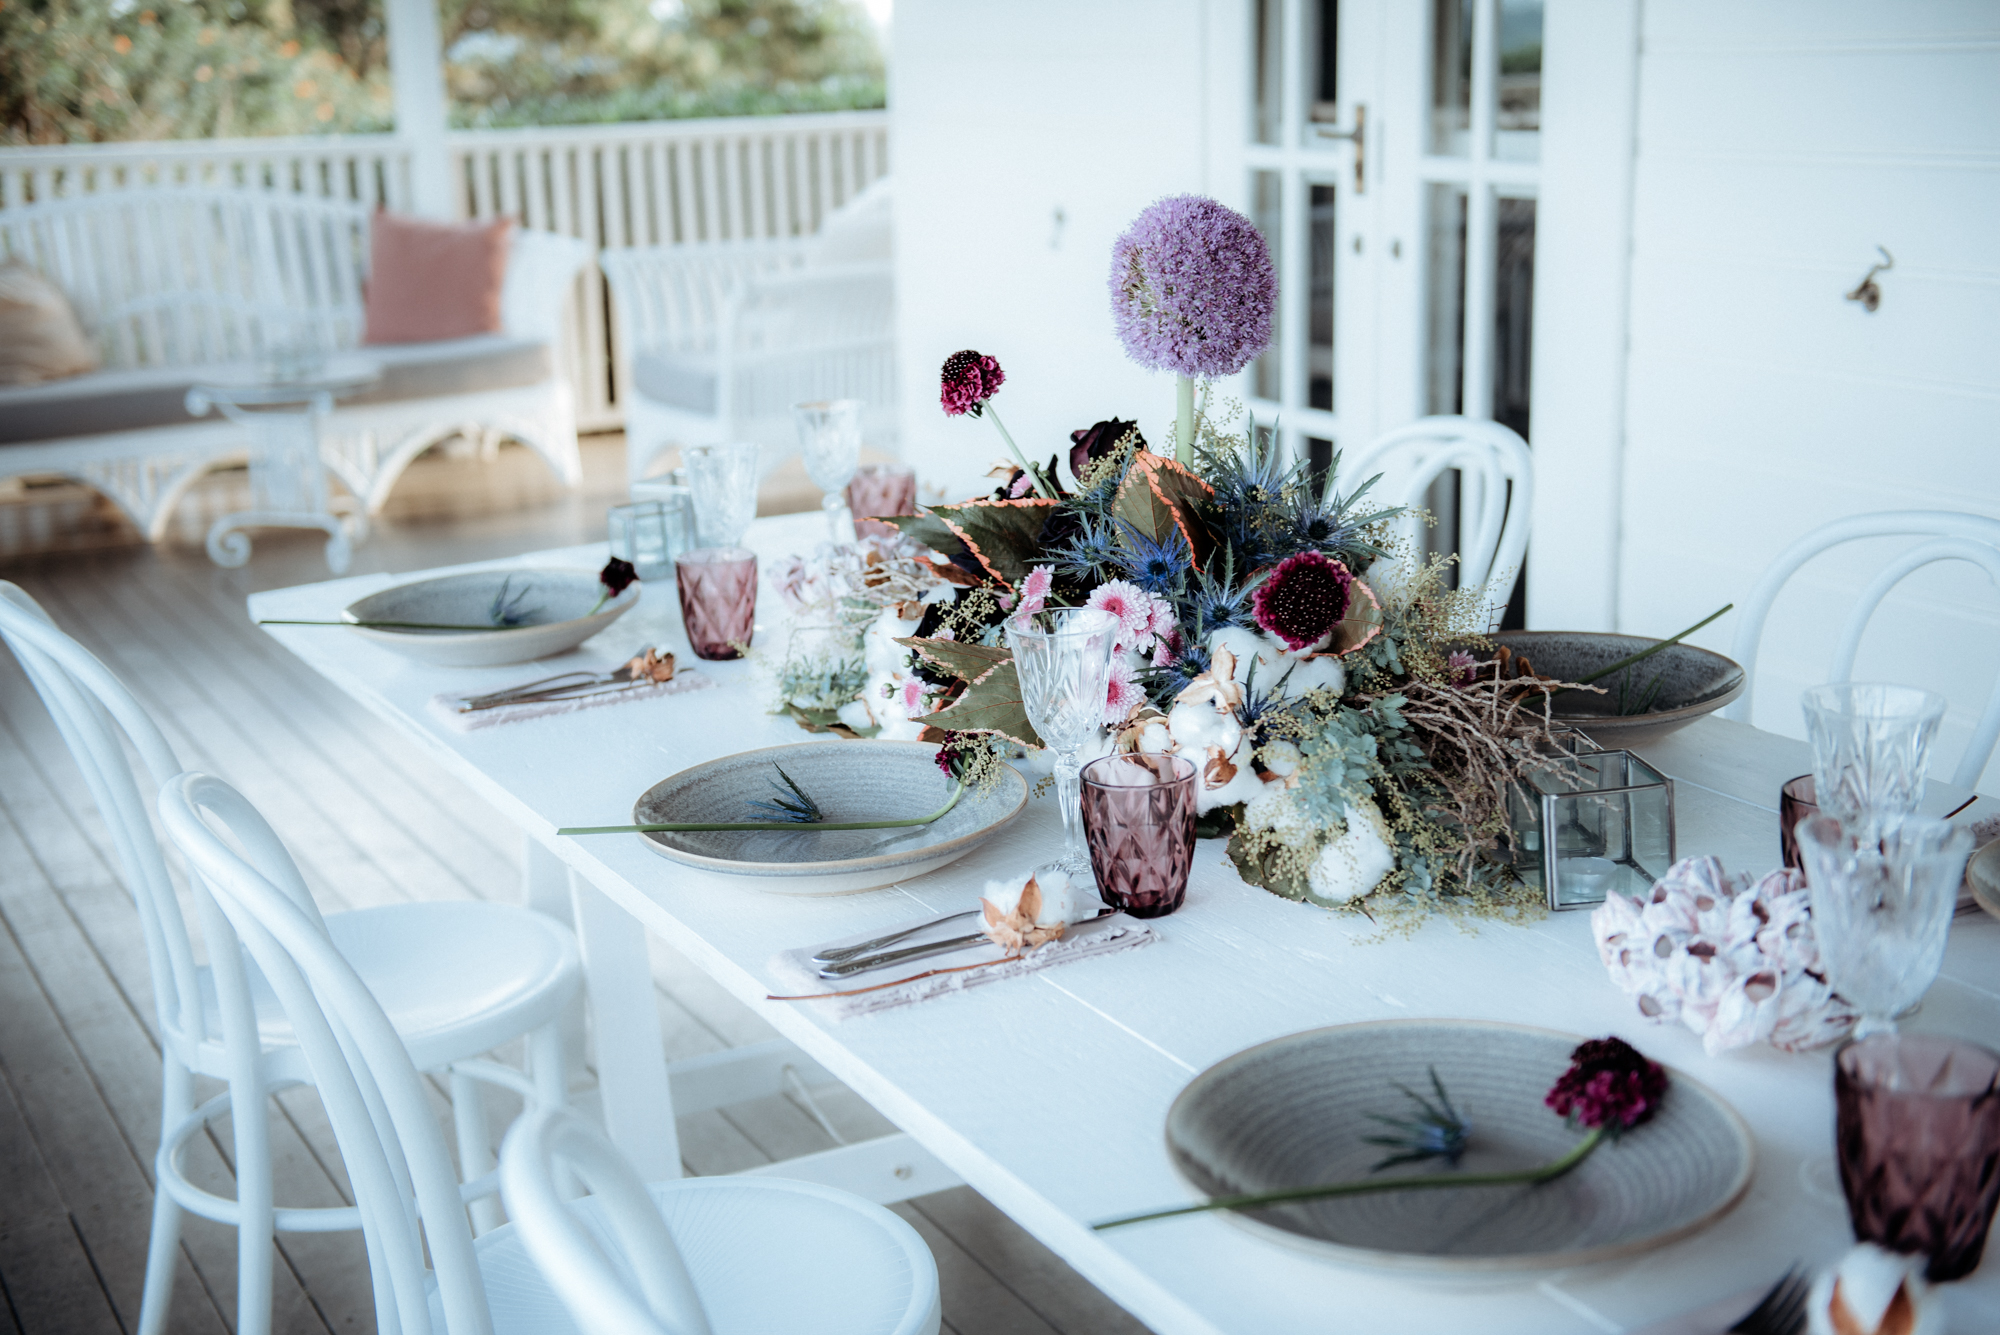 Florals - Victoria's Fitzgibbons   Photos - Captured by Inga